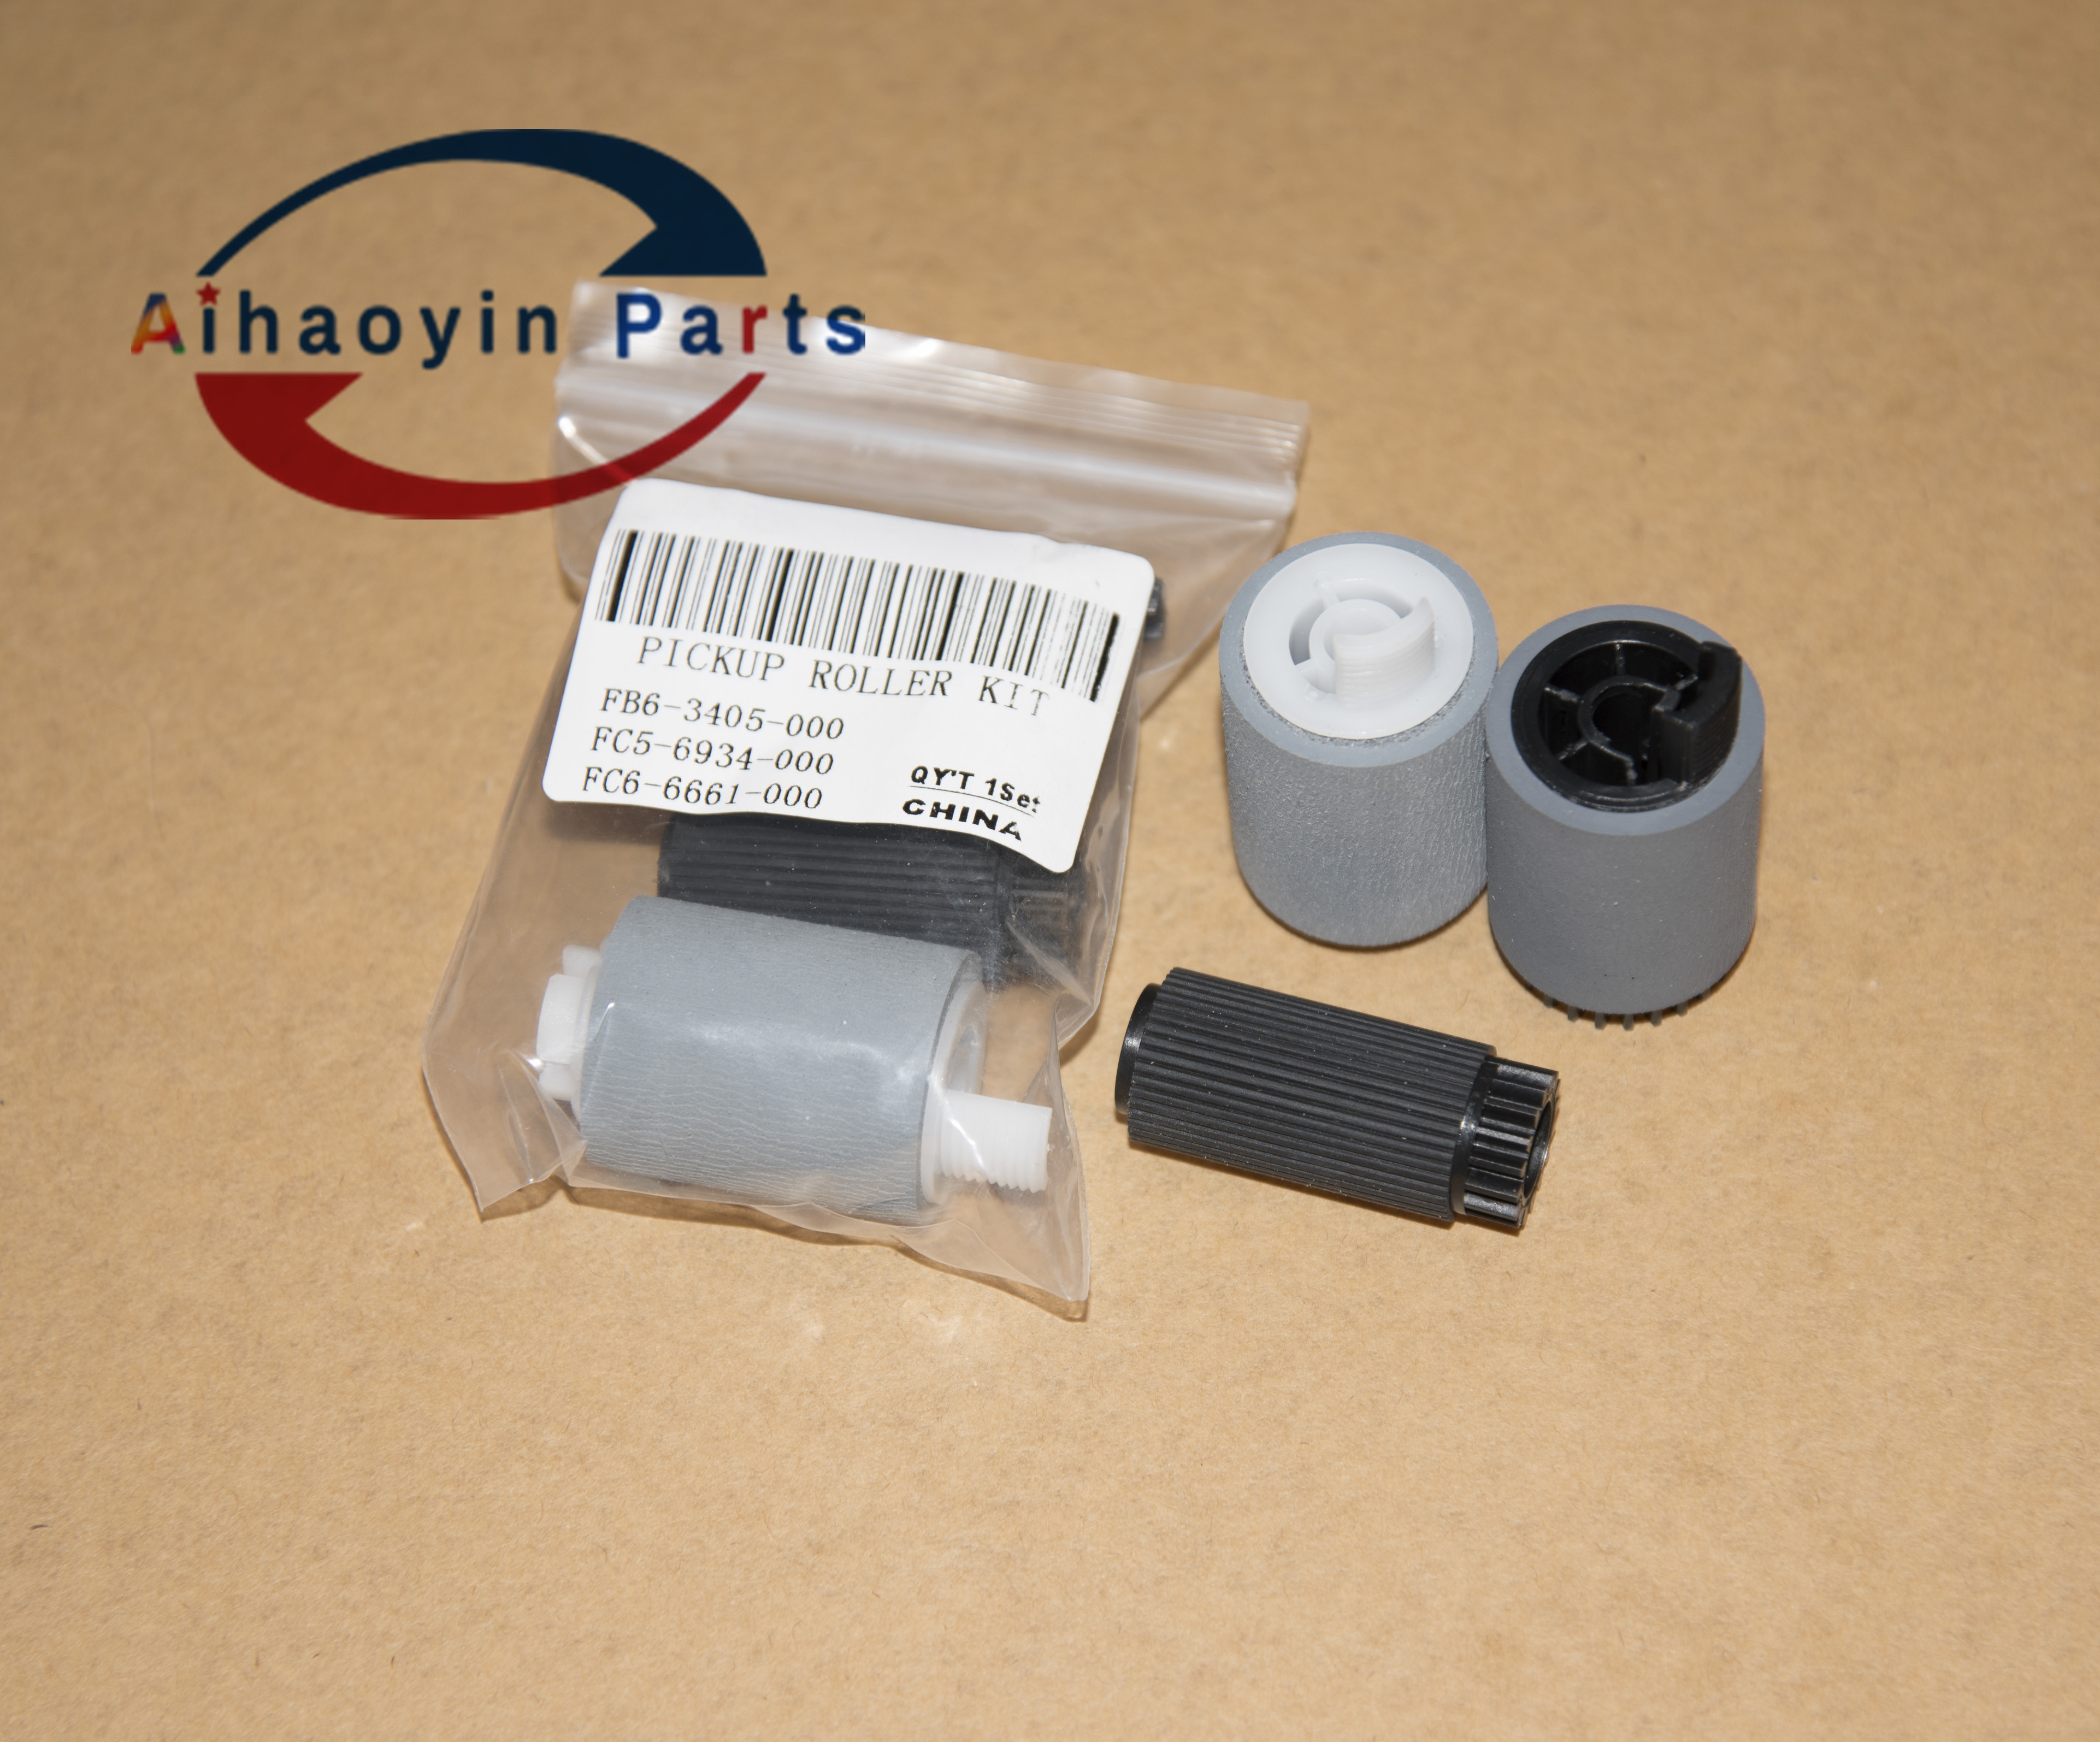 5sets Pickup Roller FC6-6661 FC7-9381 F7-9502 FOR Canon IRC2550 C2880 C3580 IRC2550 IRC2880 IRC3080 IRC3380 IRC3580 IRC4580 image